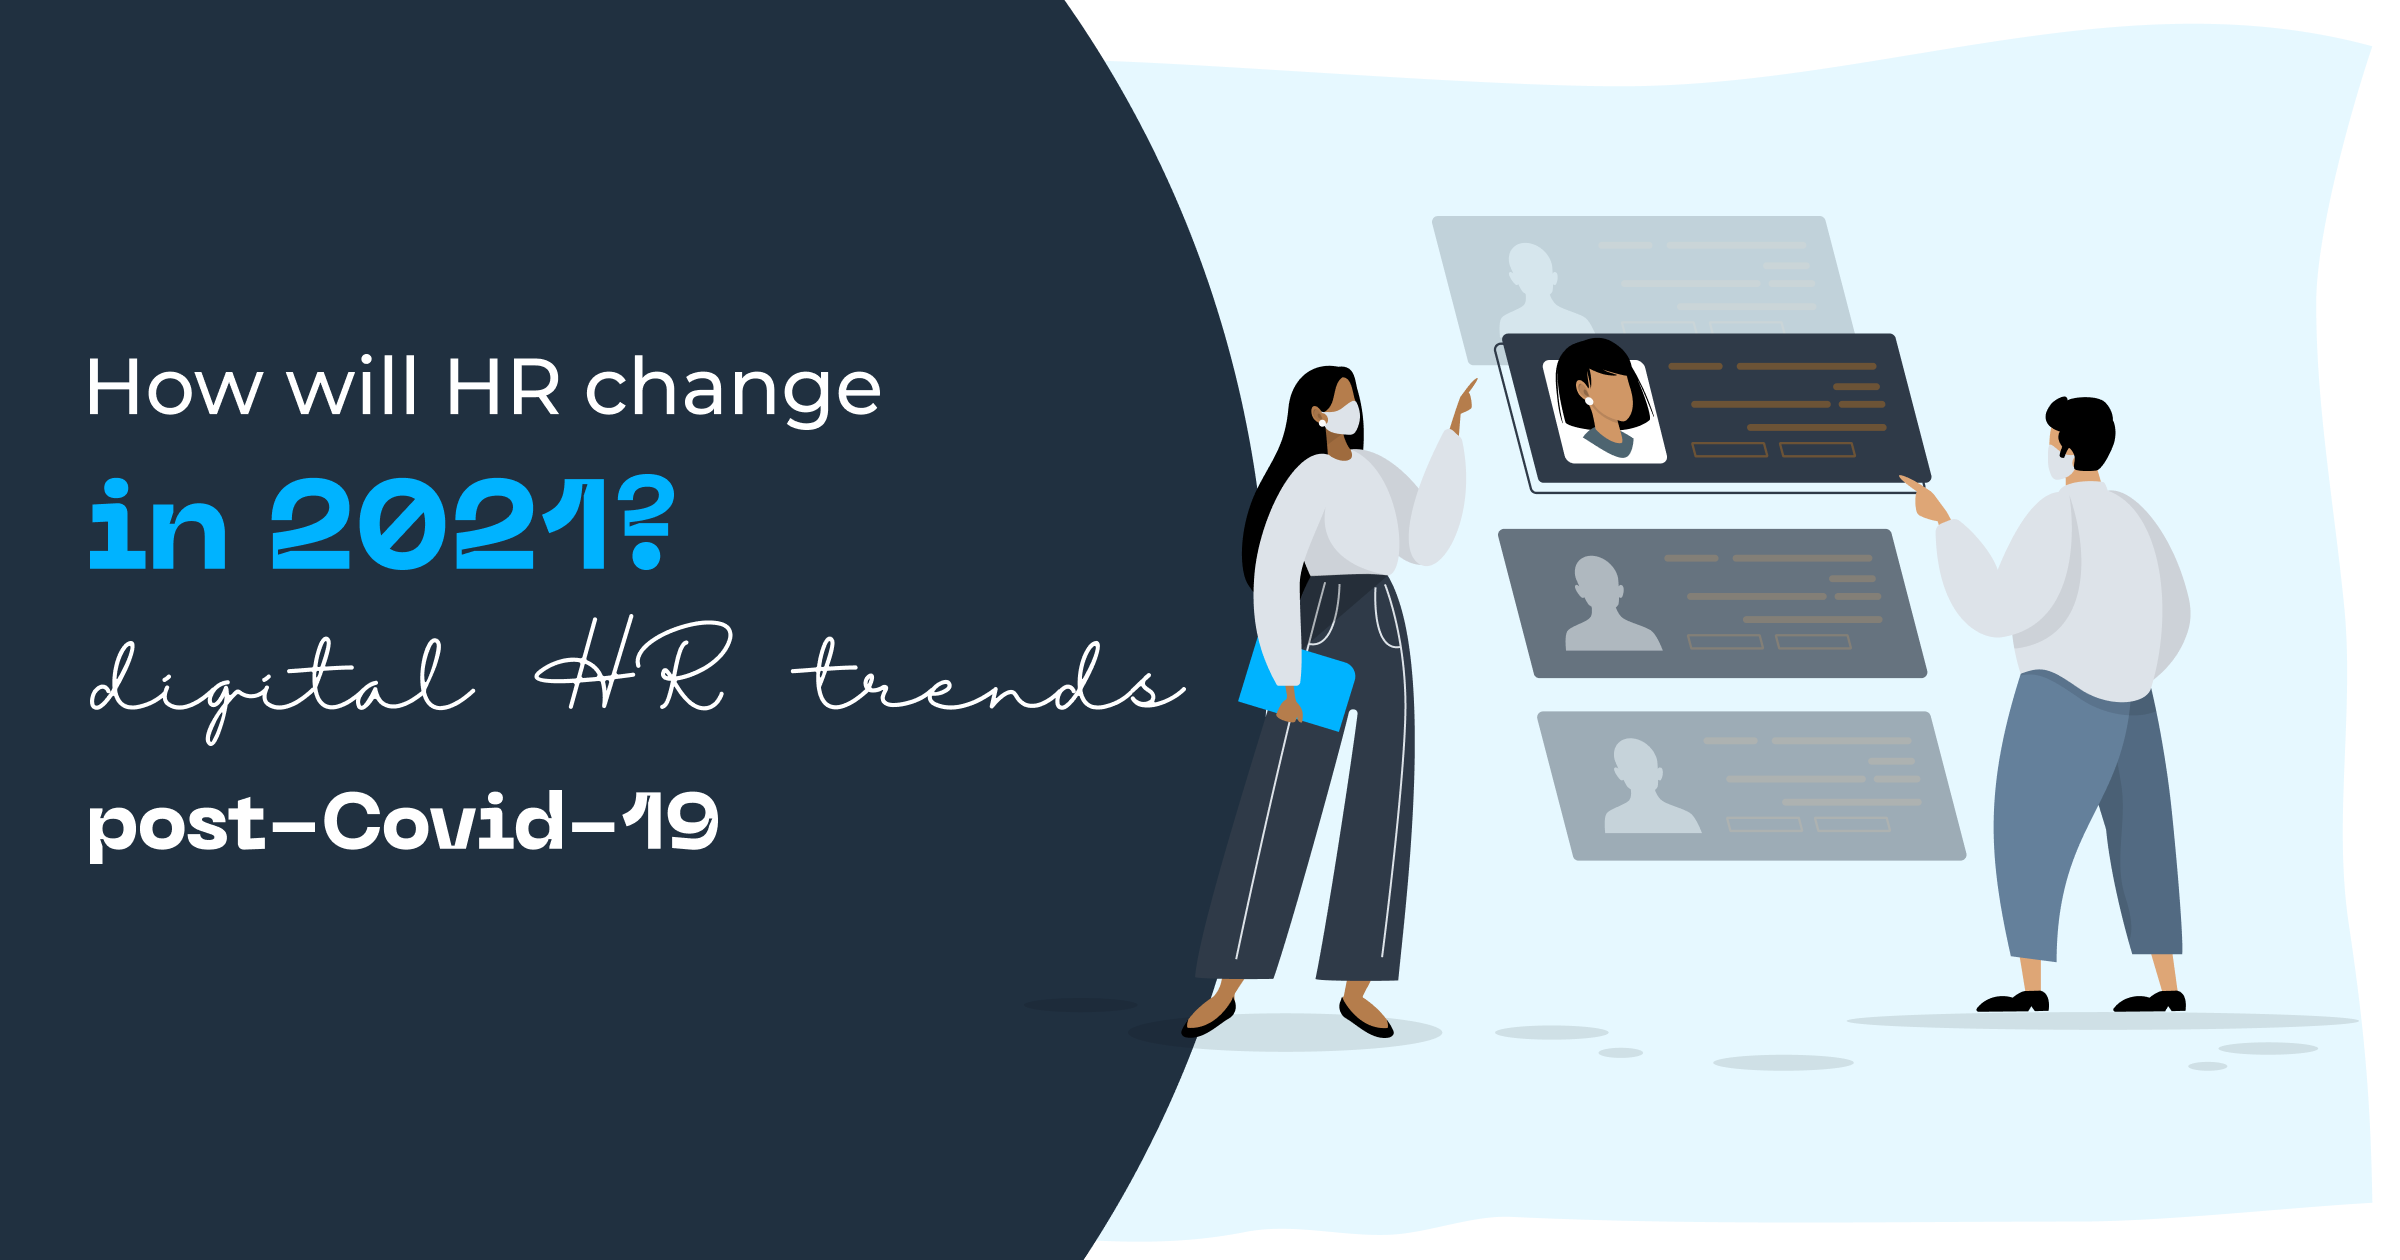 How will HR change in 2021? HR Trends post-Covid-19